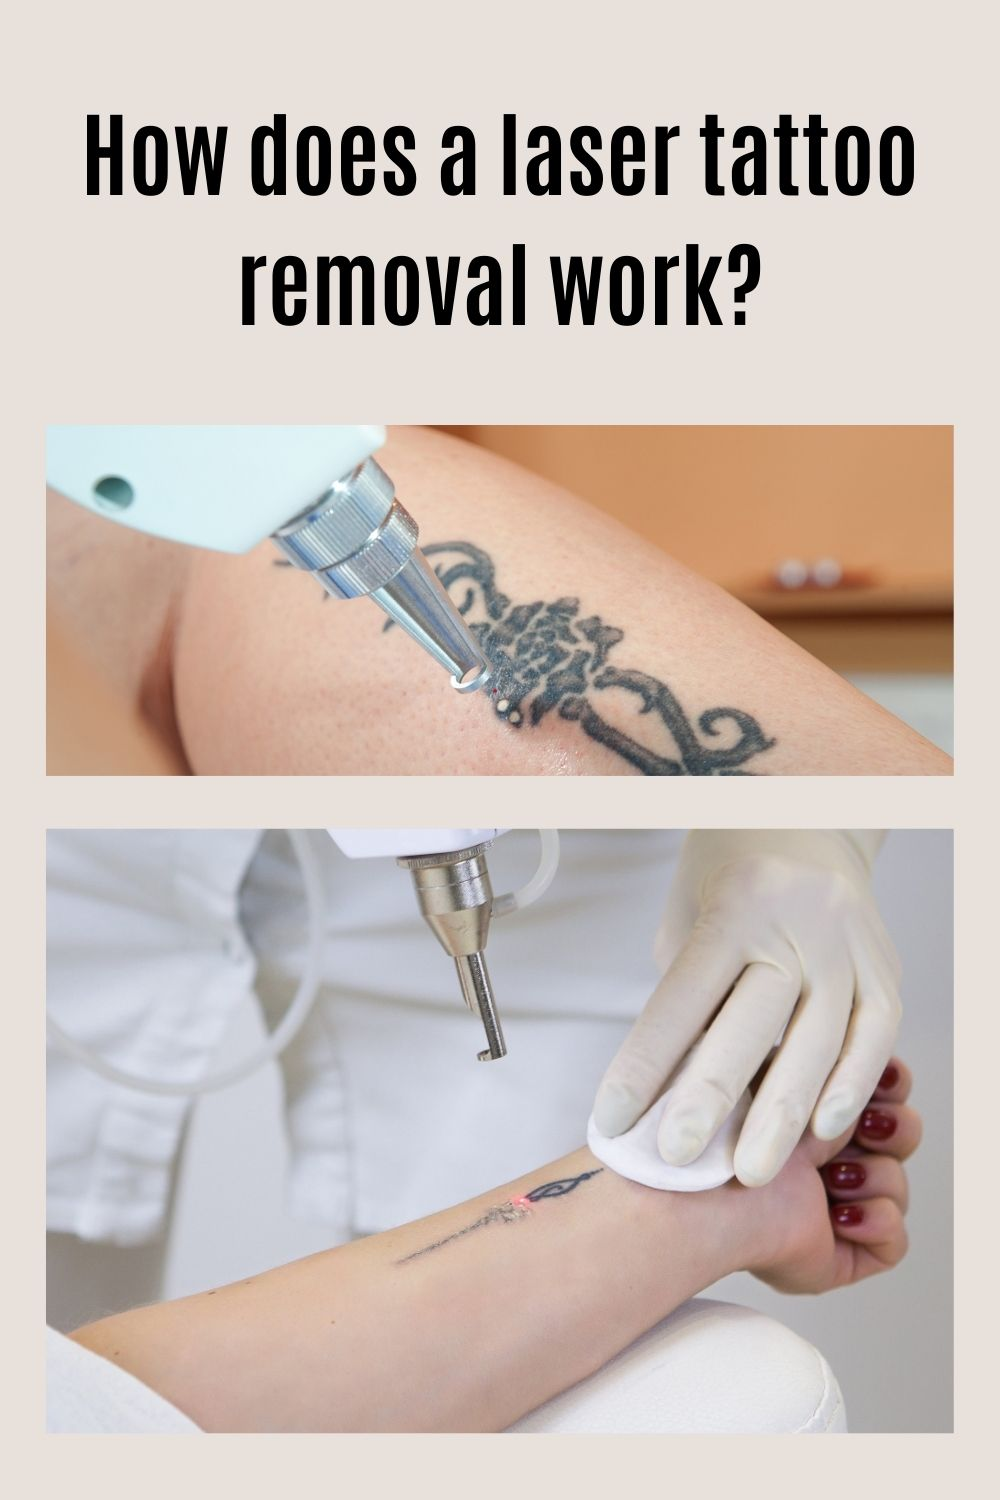 Does Laser Tattoo Removal work